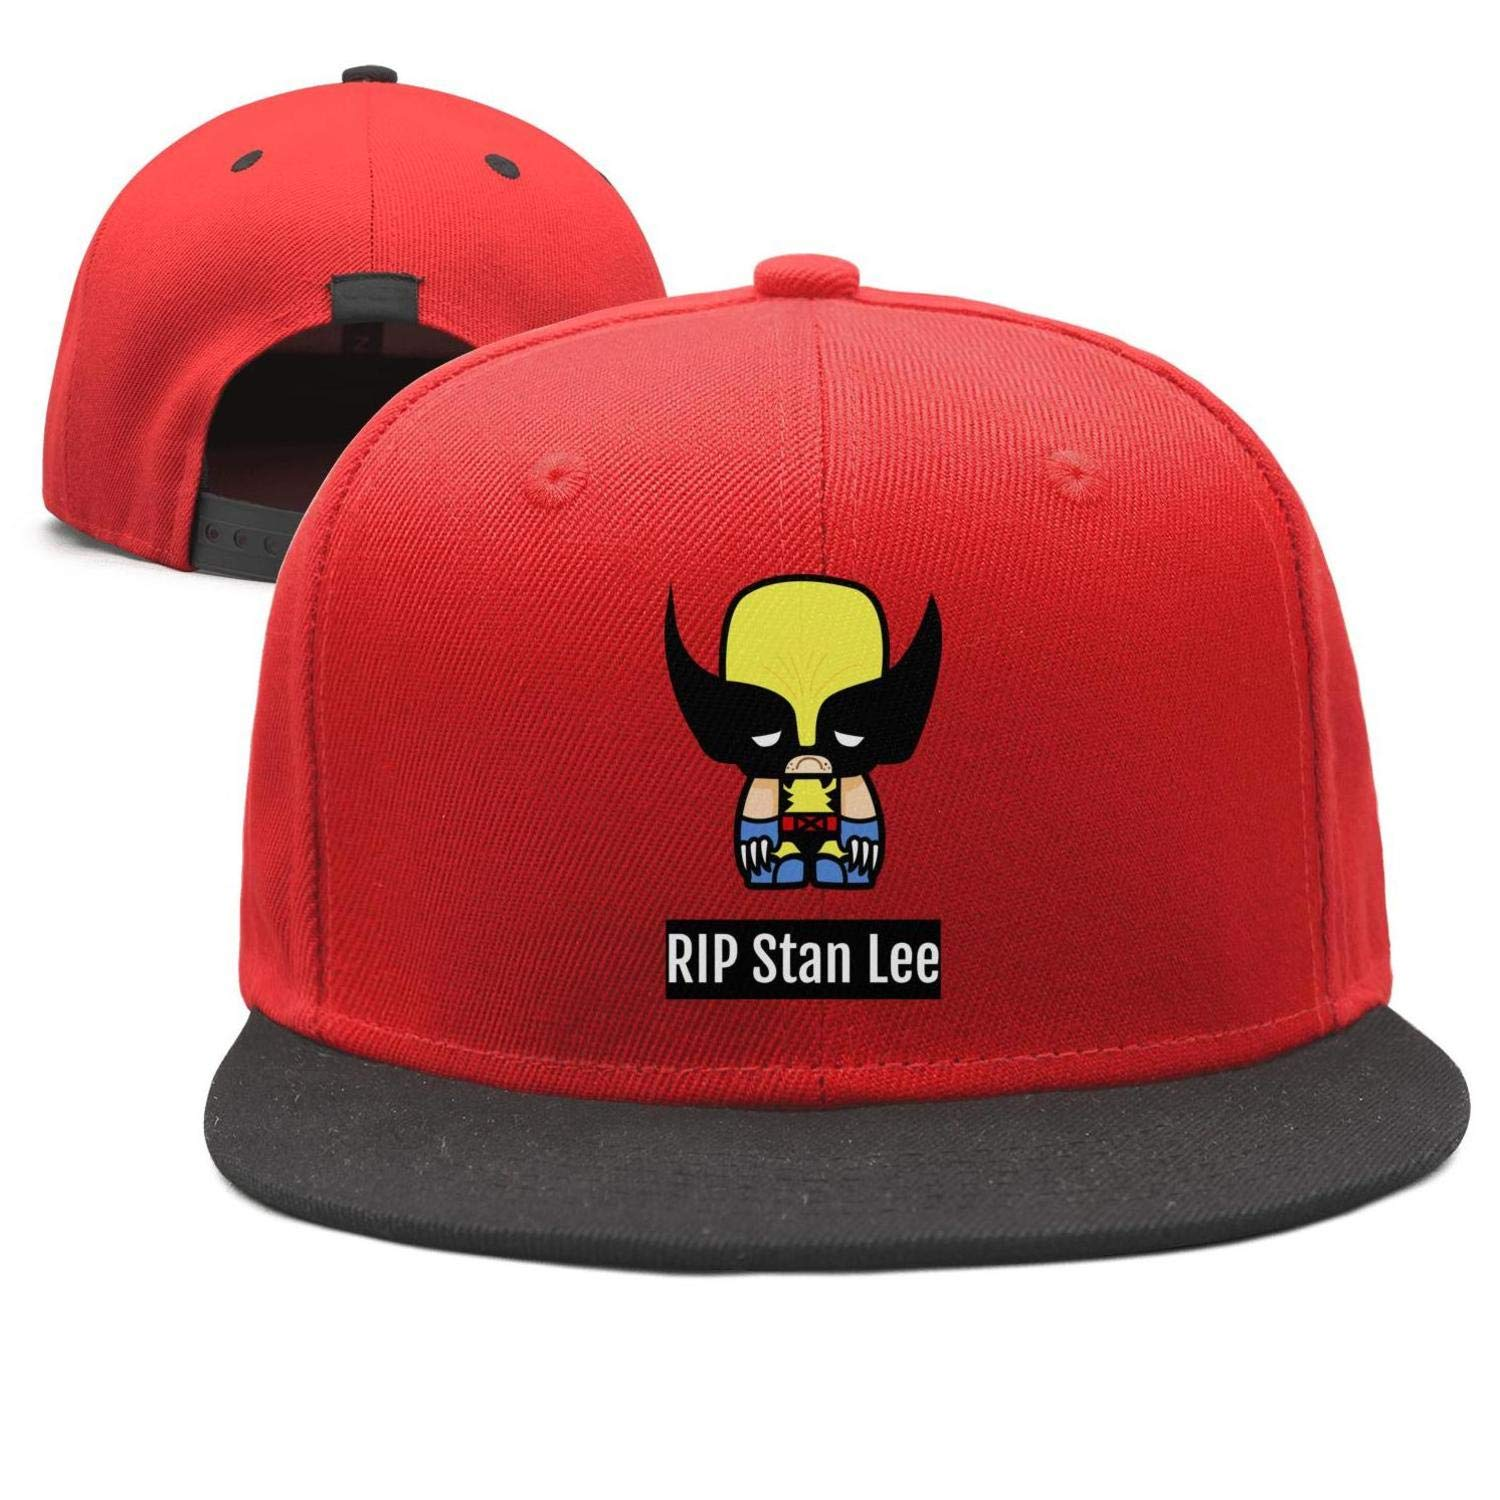 Classic Unisex hero-rip-stan-lee-1922-2018-excelsior Cotton Baseball Cap Adjustable Ball Hat